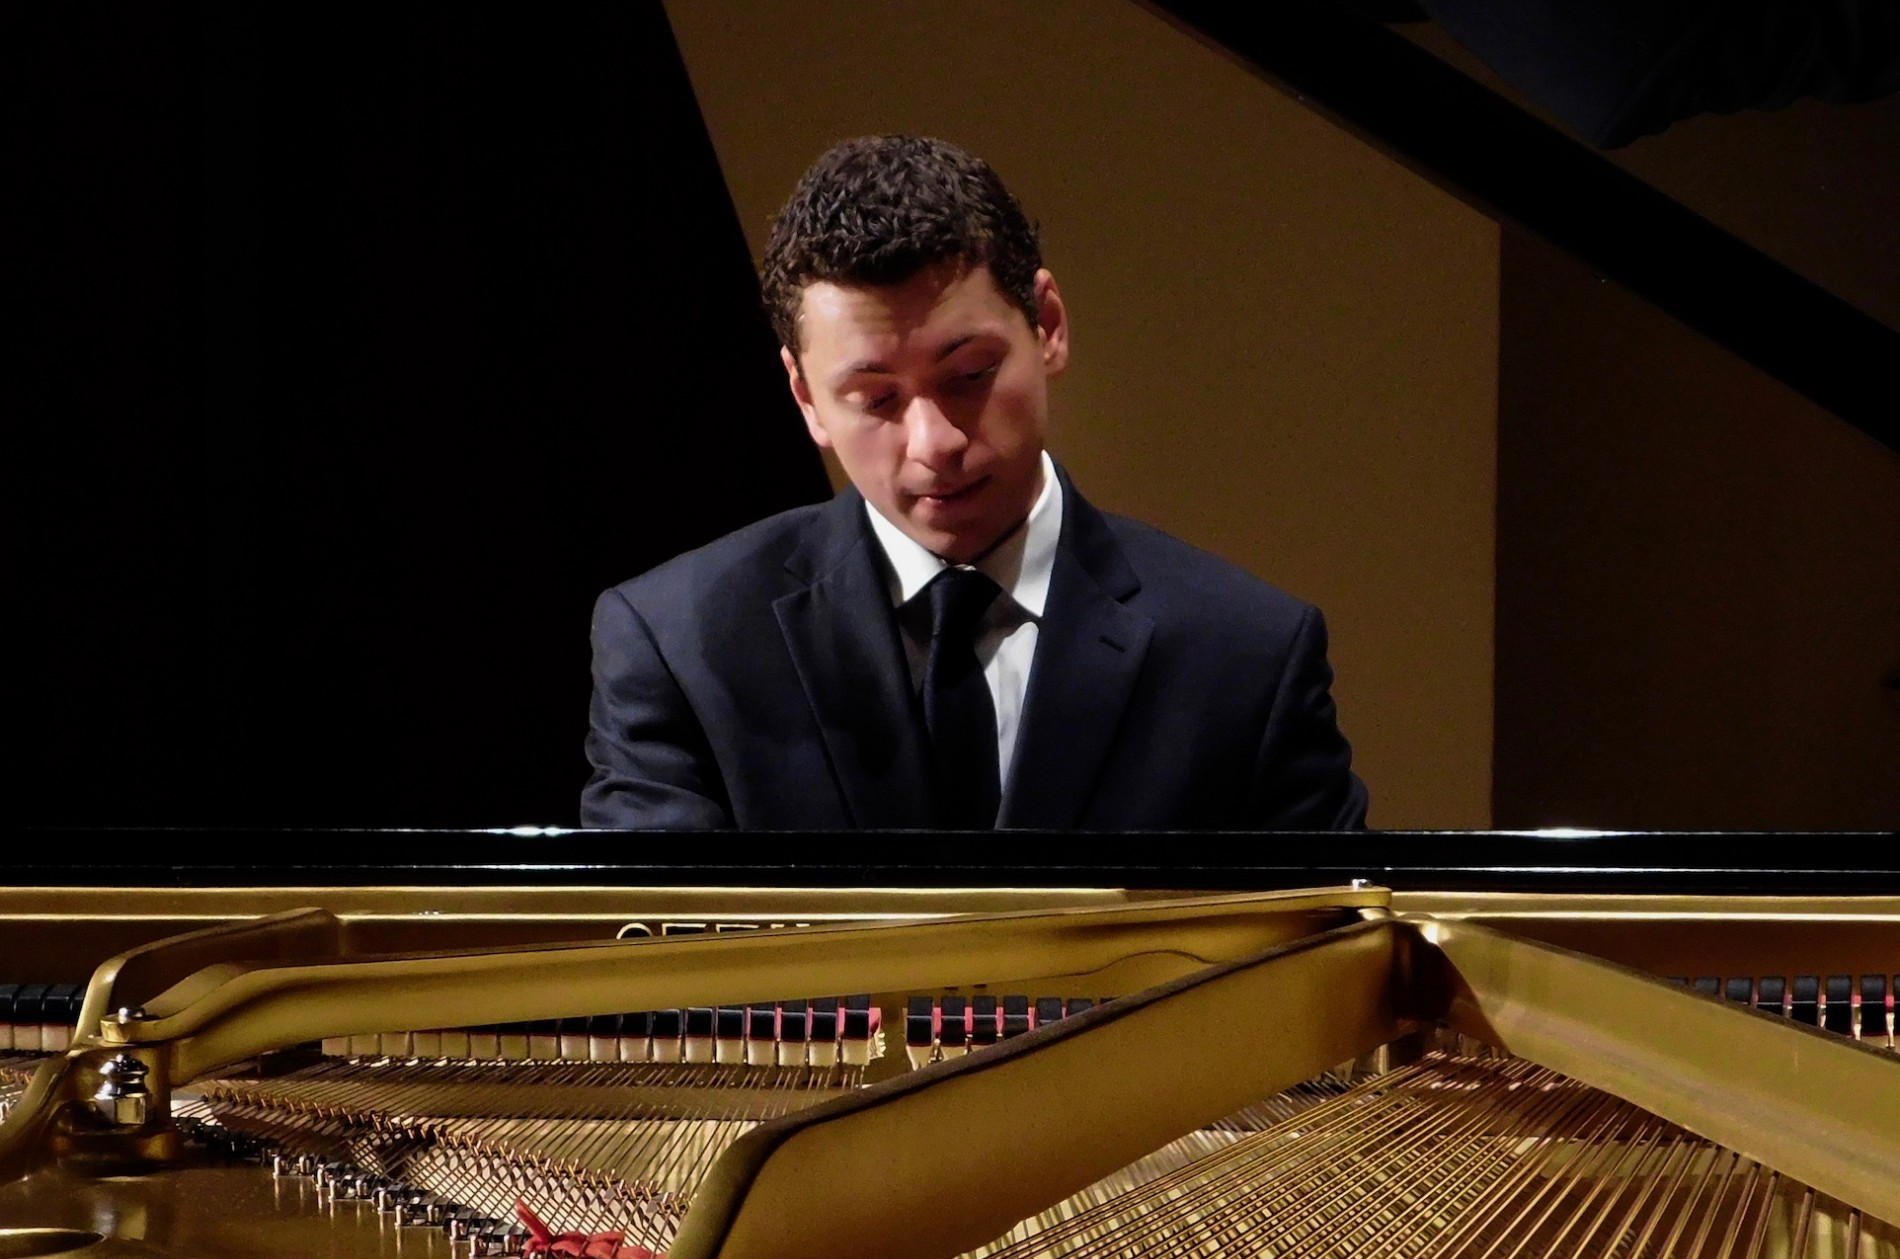 Dominic Cheli playing piano